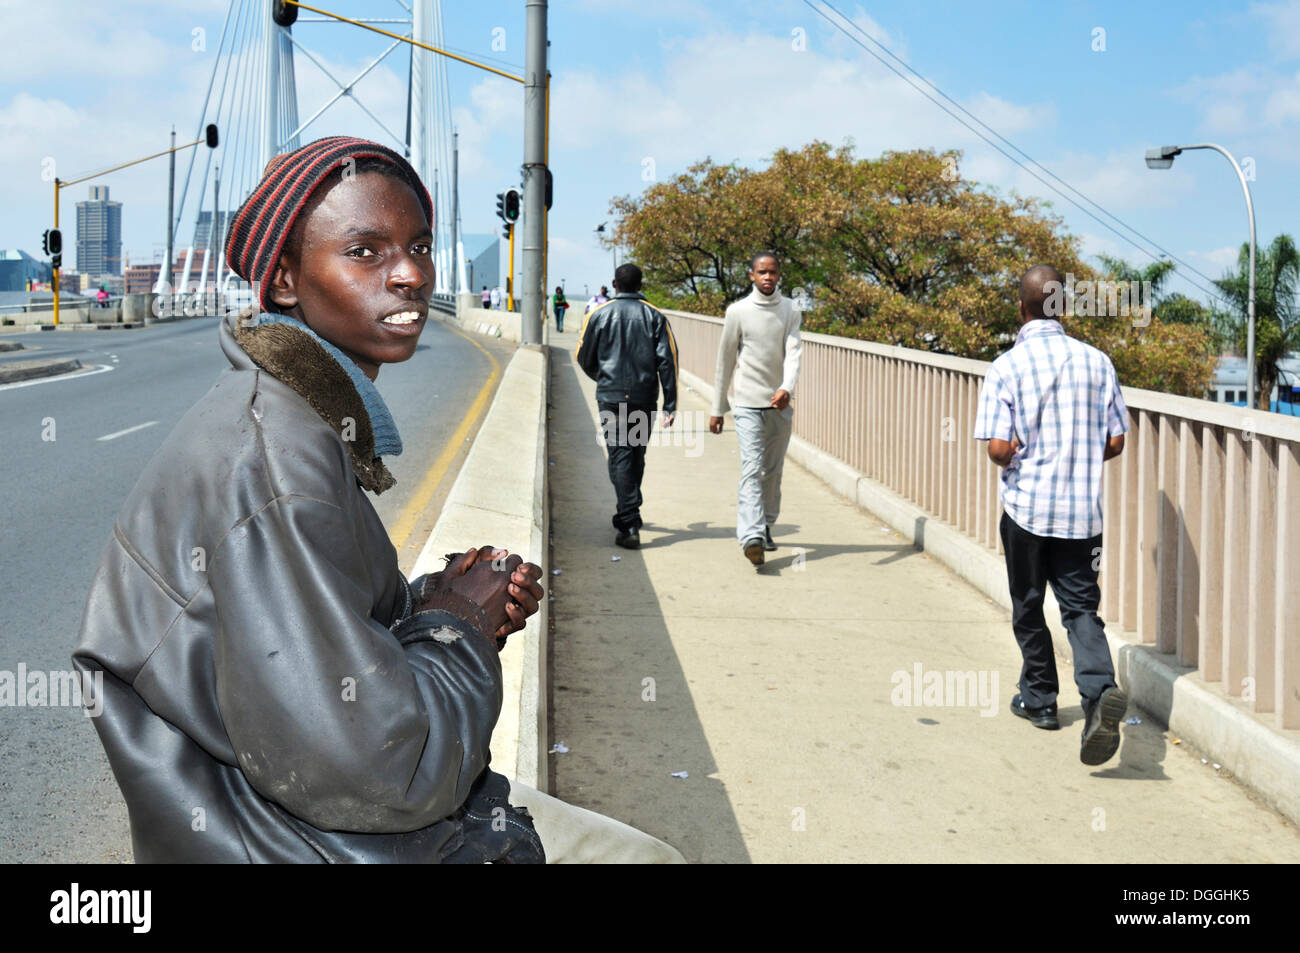 Street child begging on the Mandela Bridge, Johannesburg, South Africa, Africa - Stock Image